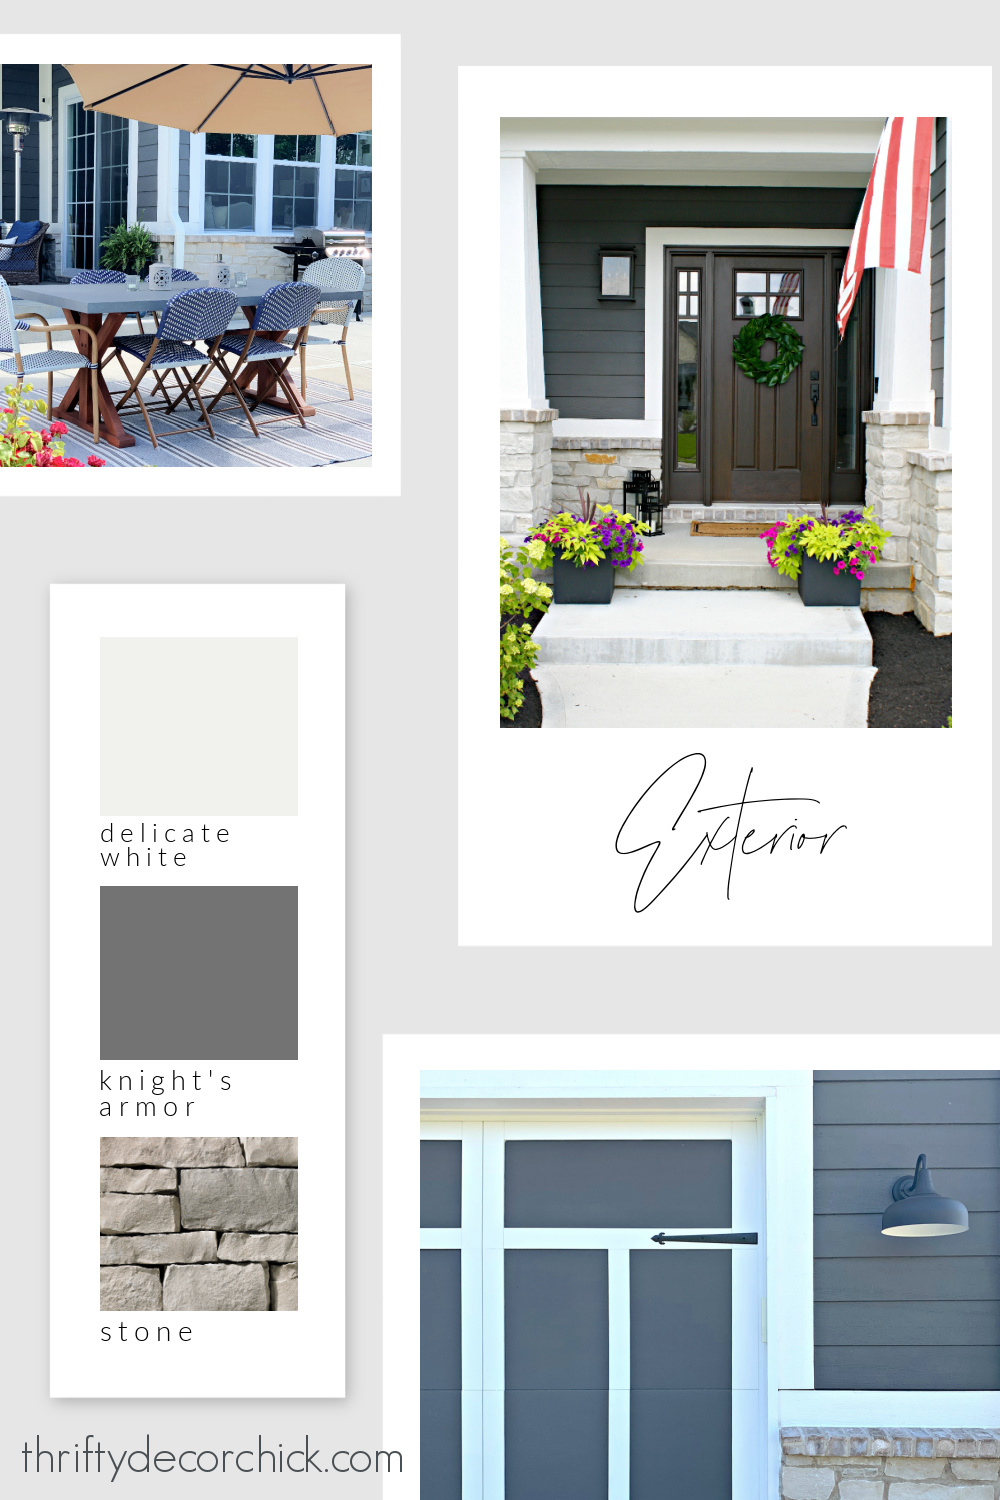 Thrifty Decor Chick house paint colors